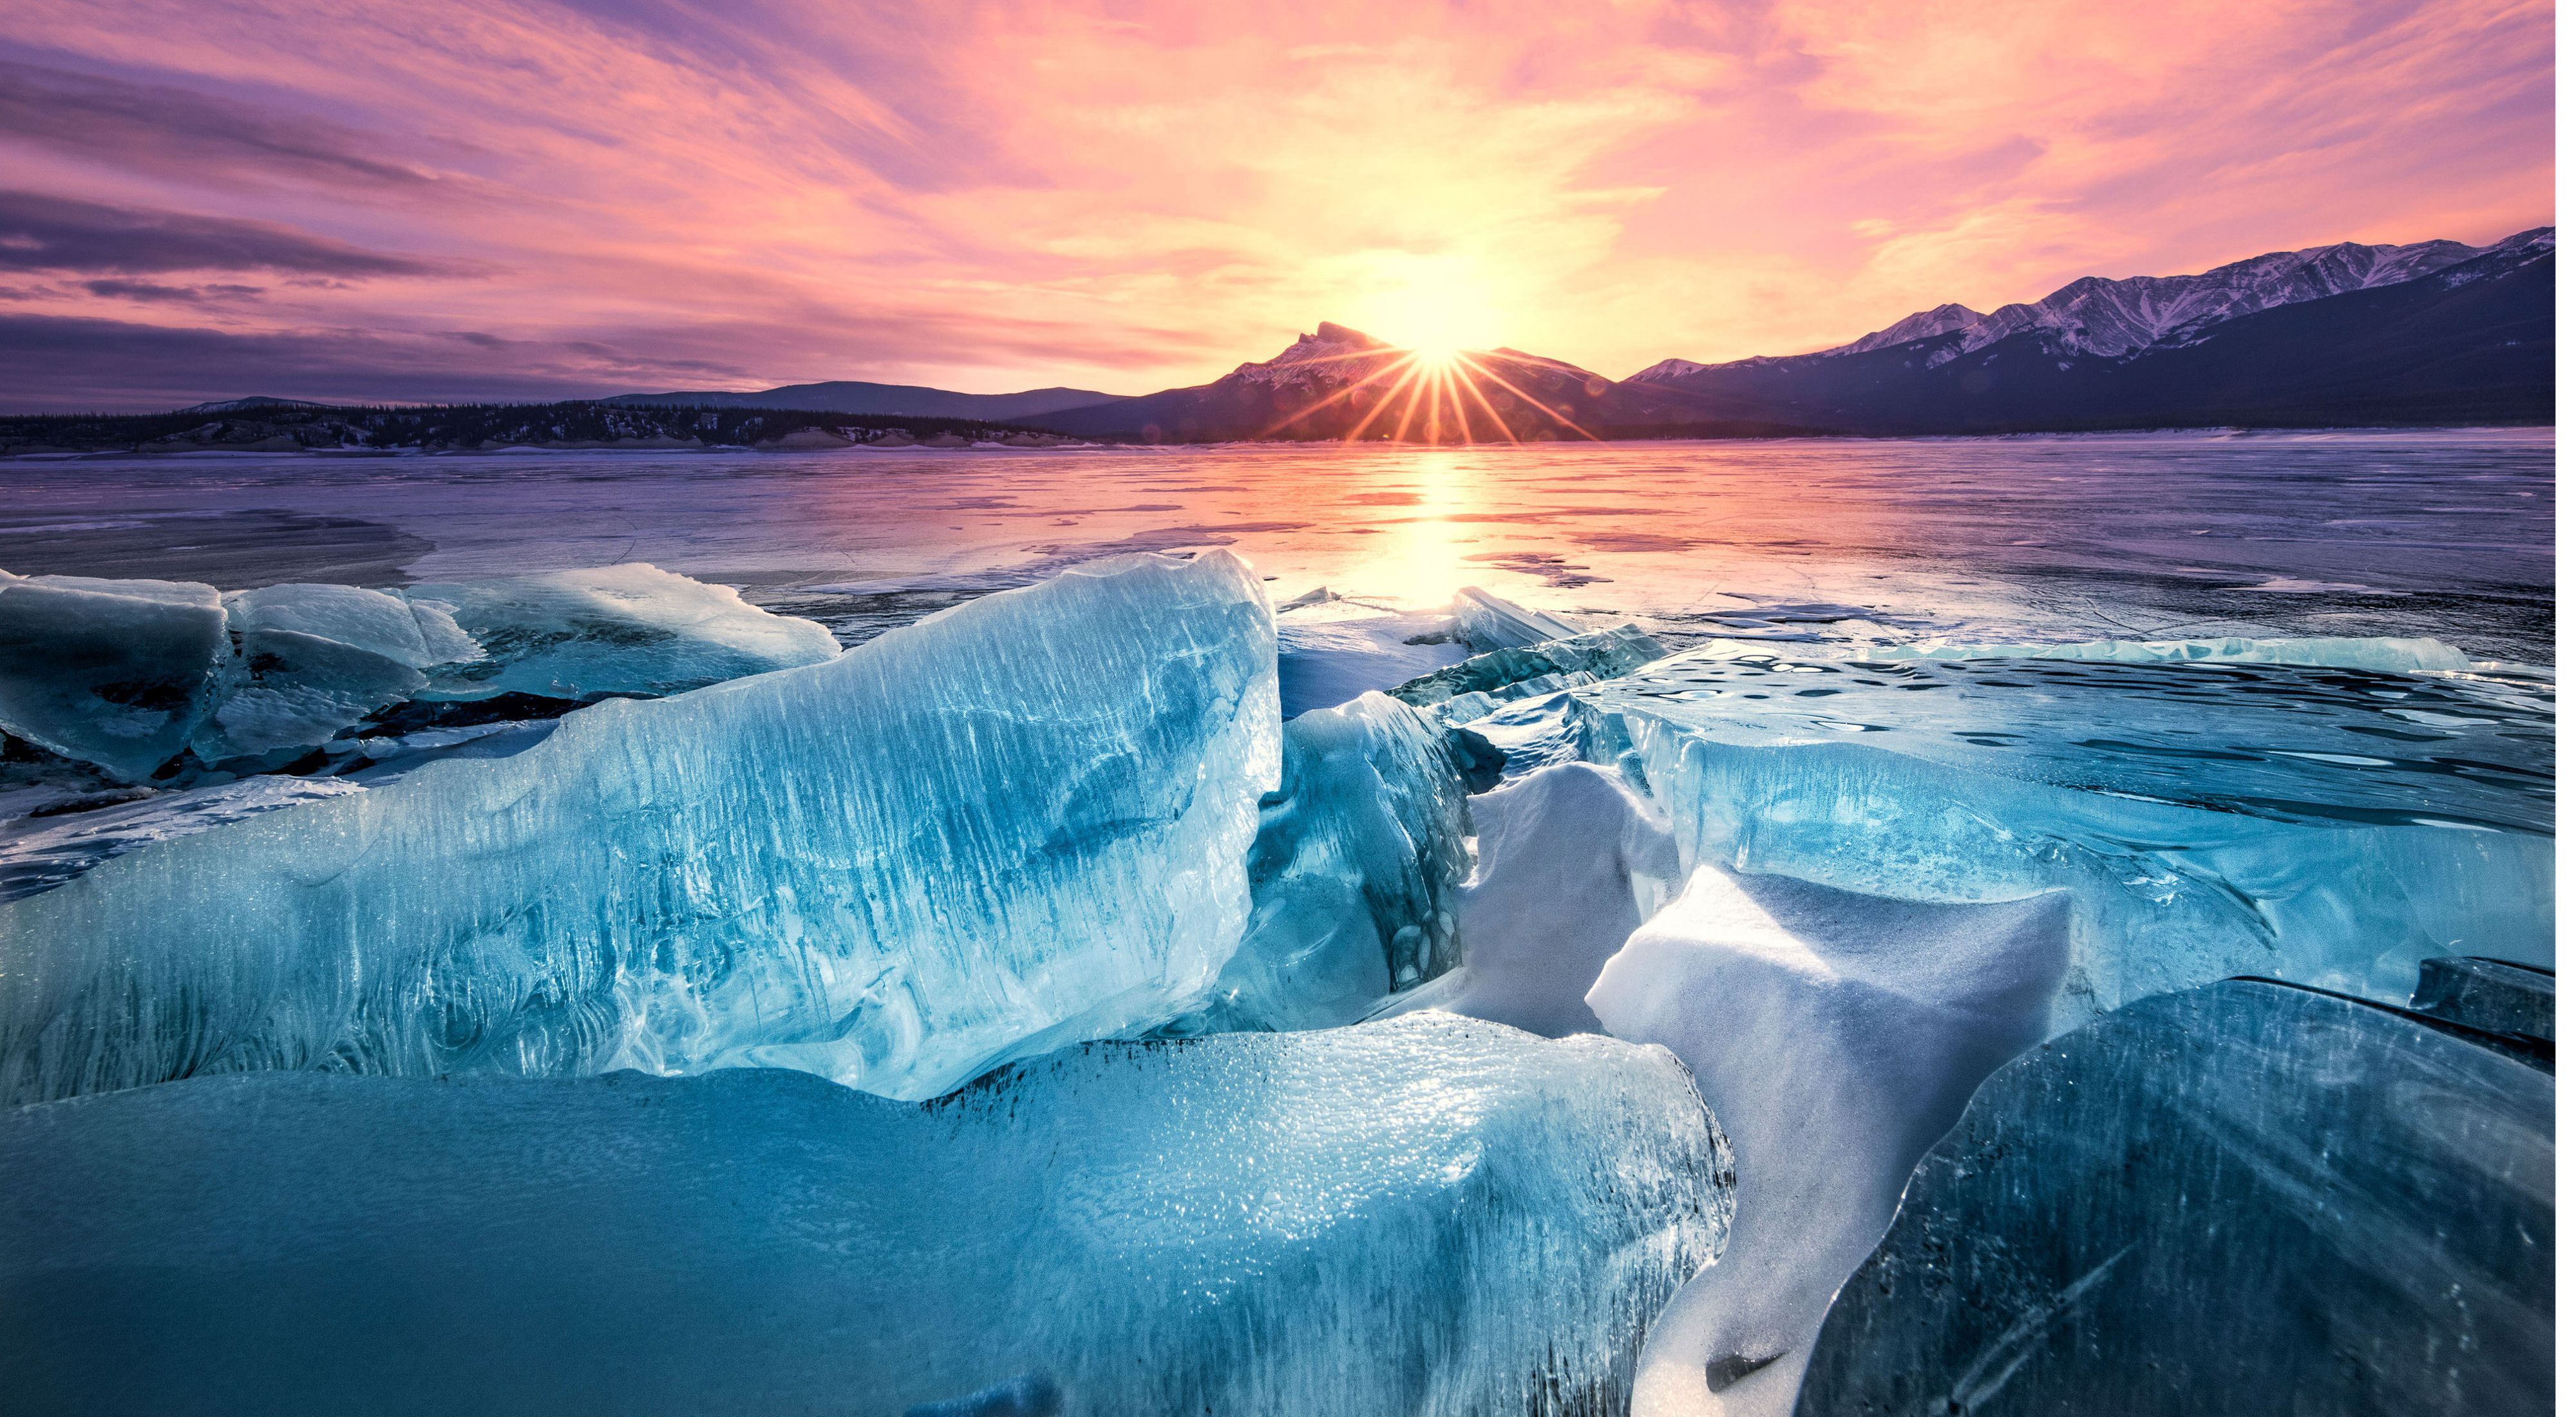 Beautiful sunset with ice floes